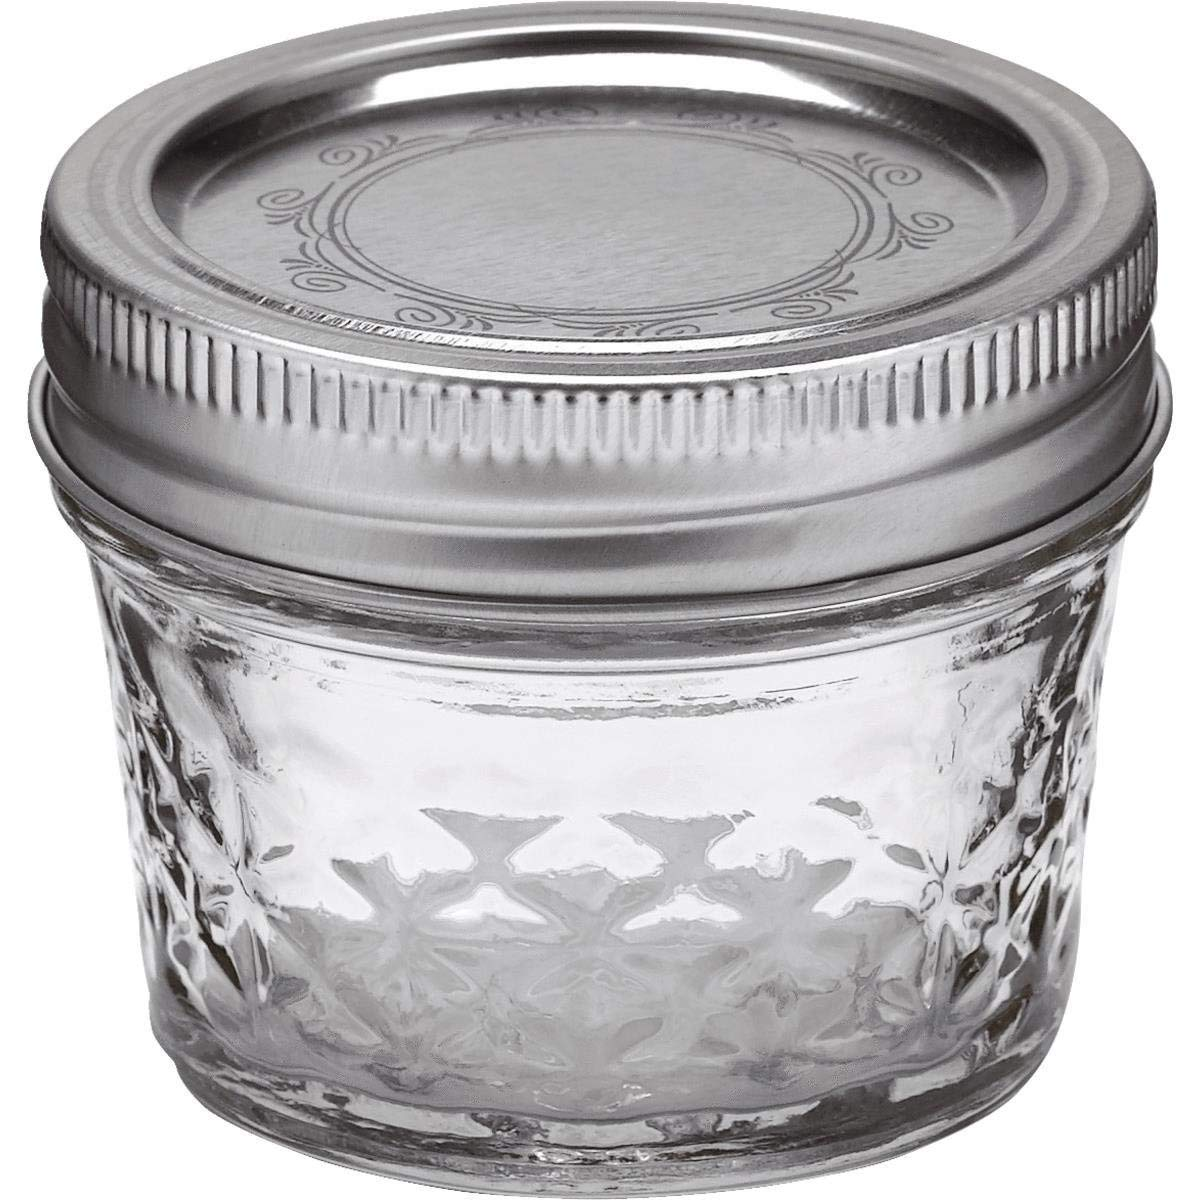 Ball 4-Ounce Quilted Crystal Jelly Jars with Lids and Bands, Set of 12-2 Pack (Total 24 Jars) by Ball